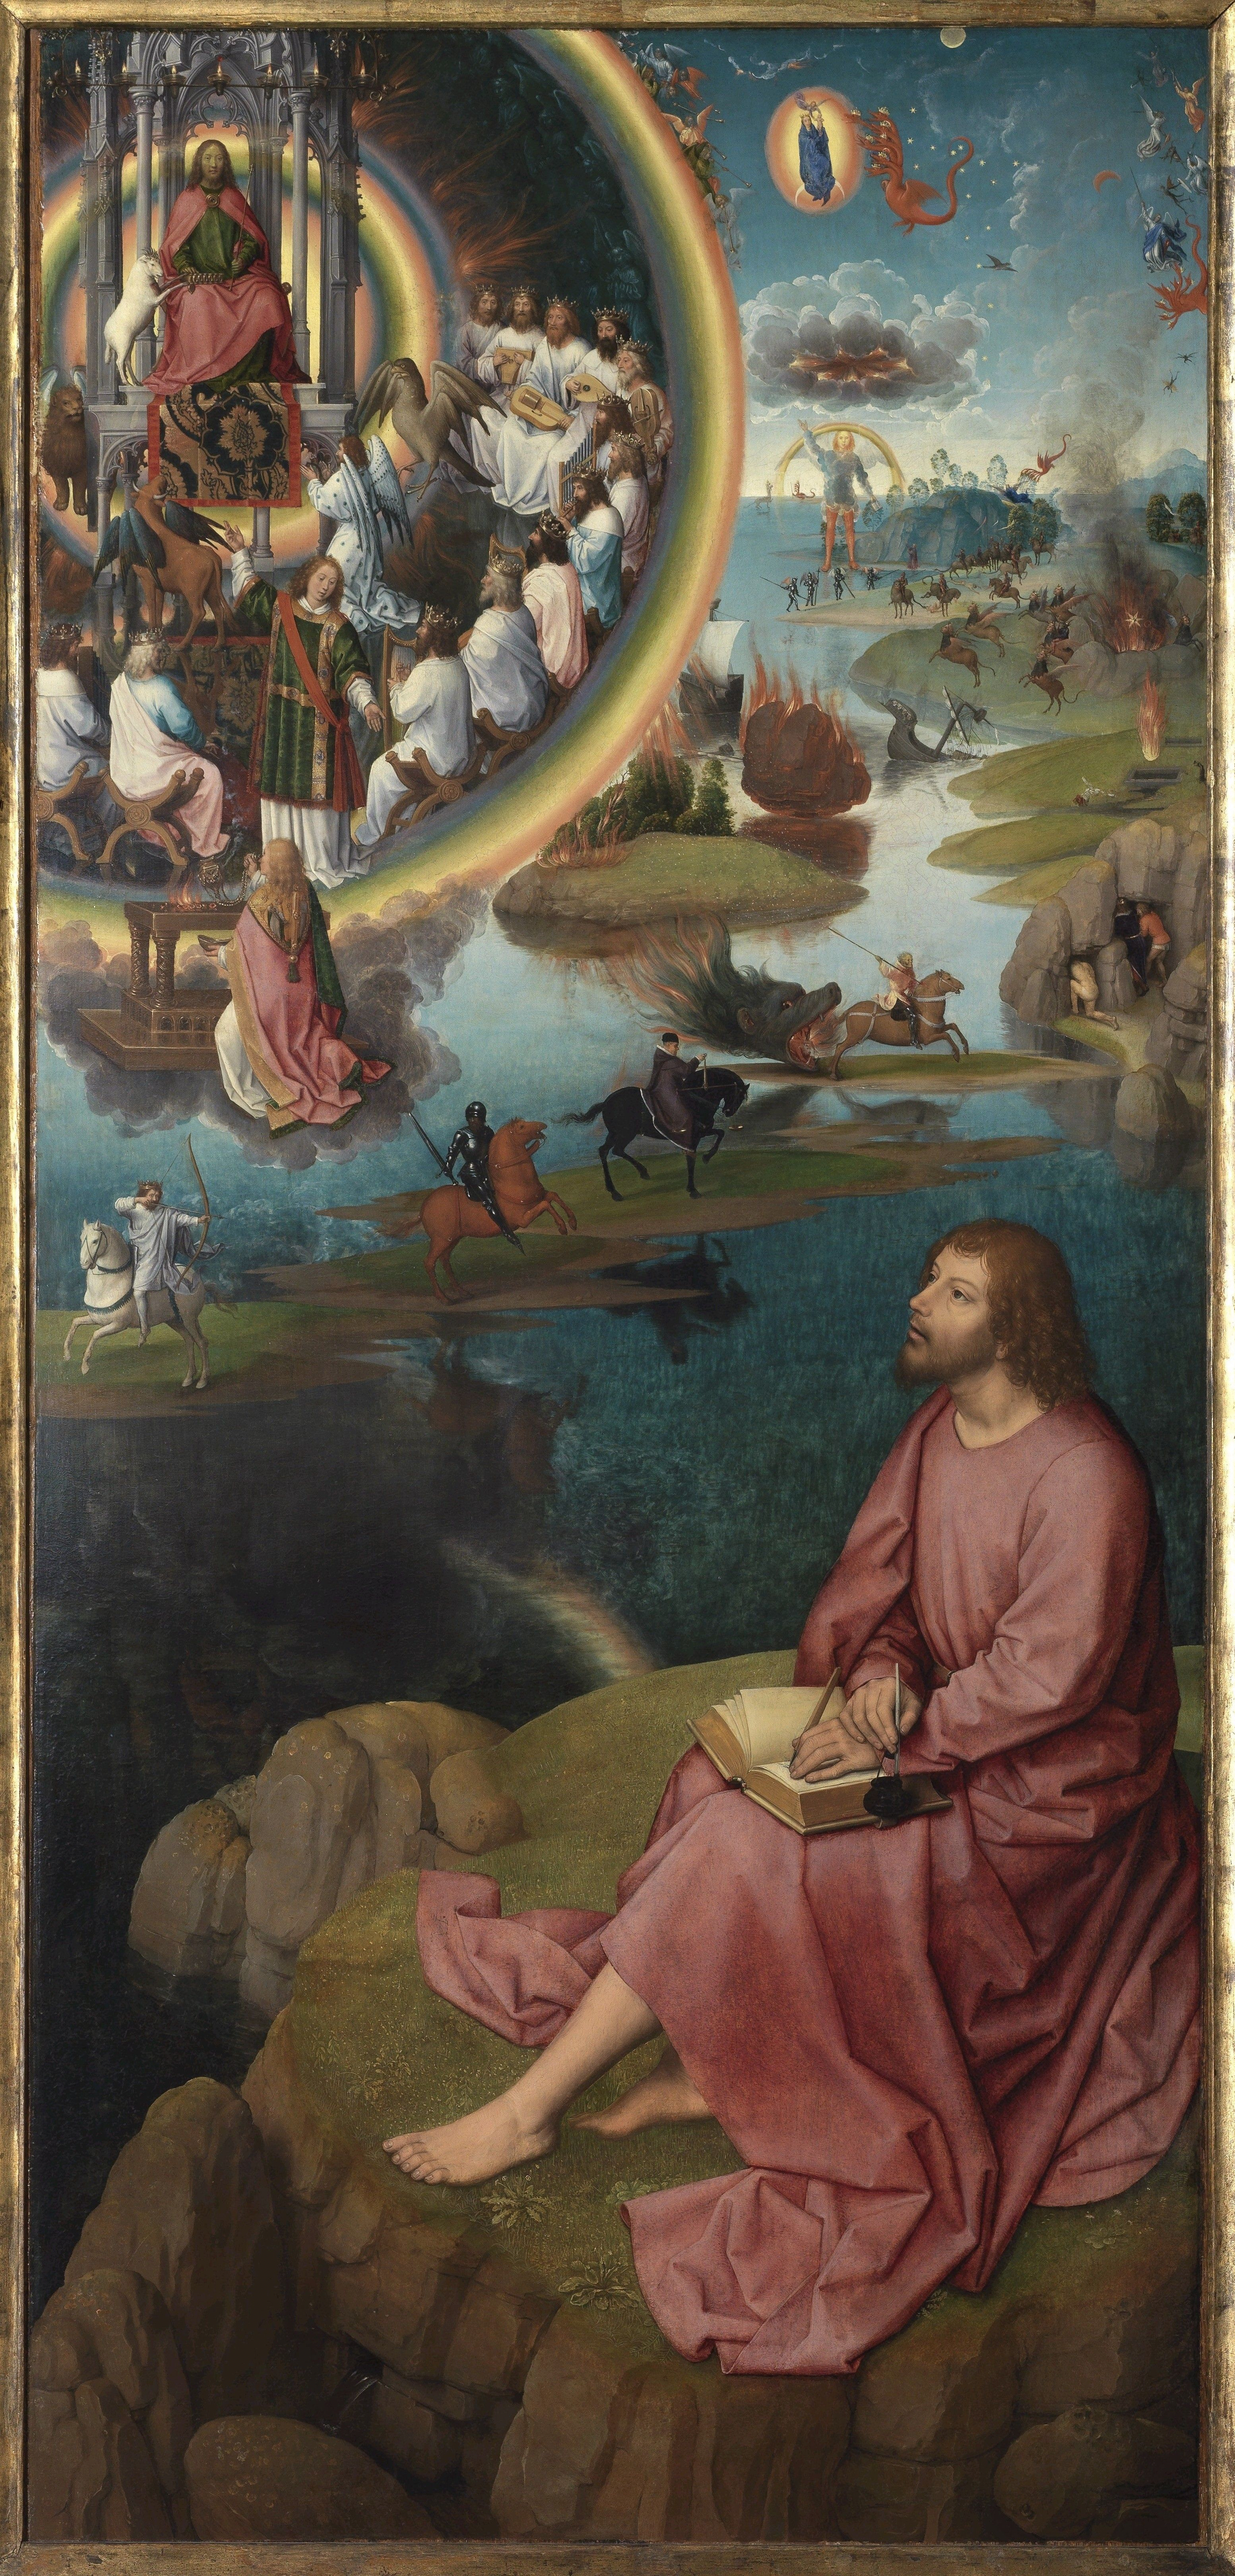 Hans Memling. The mystical betrothal of St. Catherine of Alexandria. Triptych. Right wing: Saint John the Evangelist on Patmos